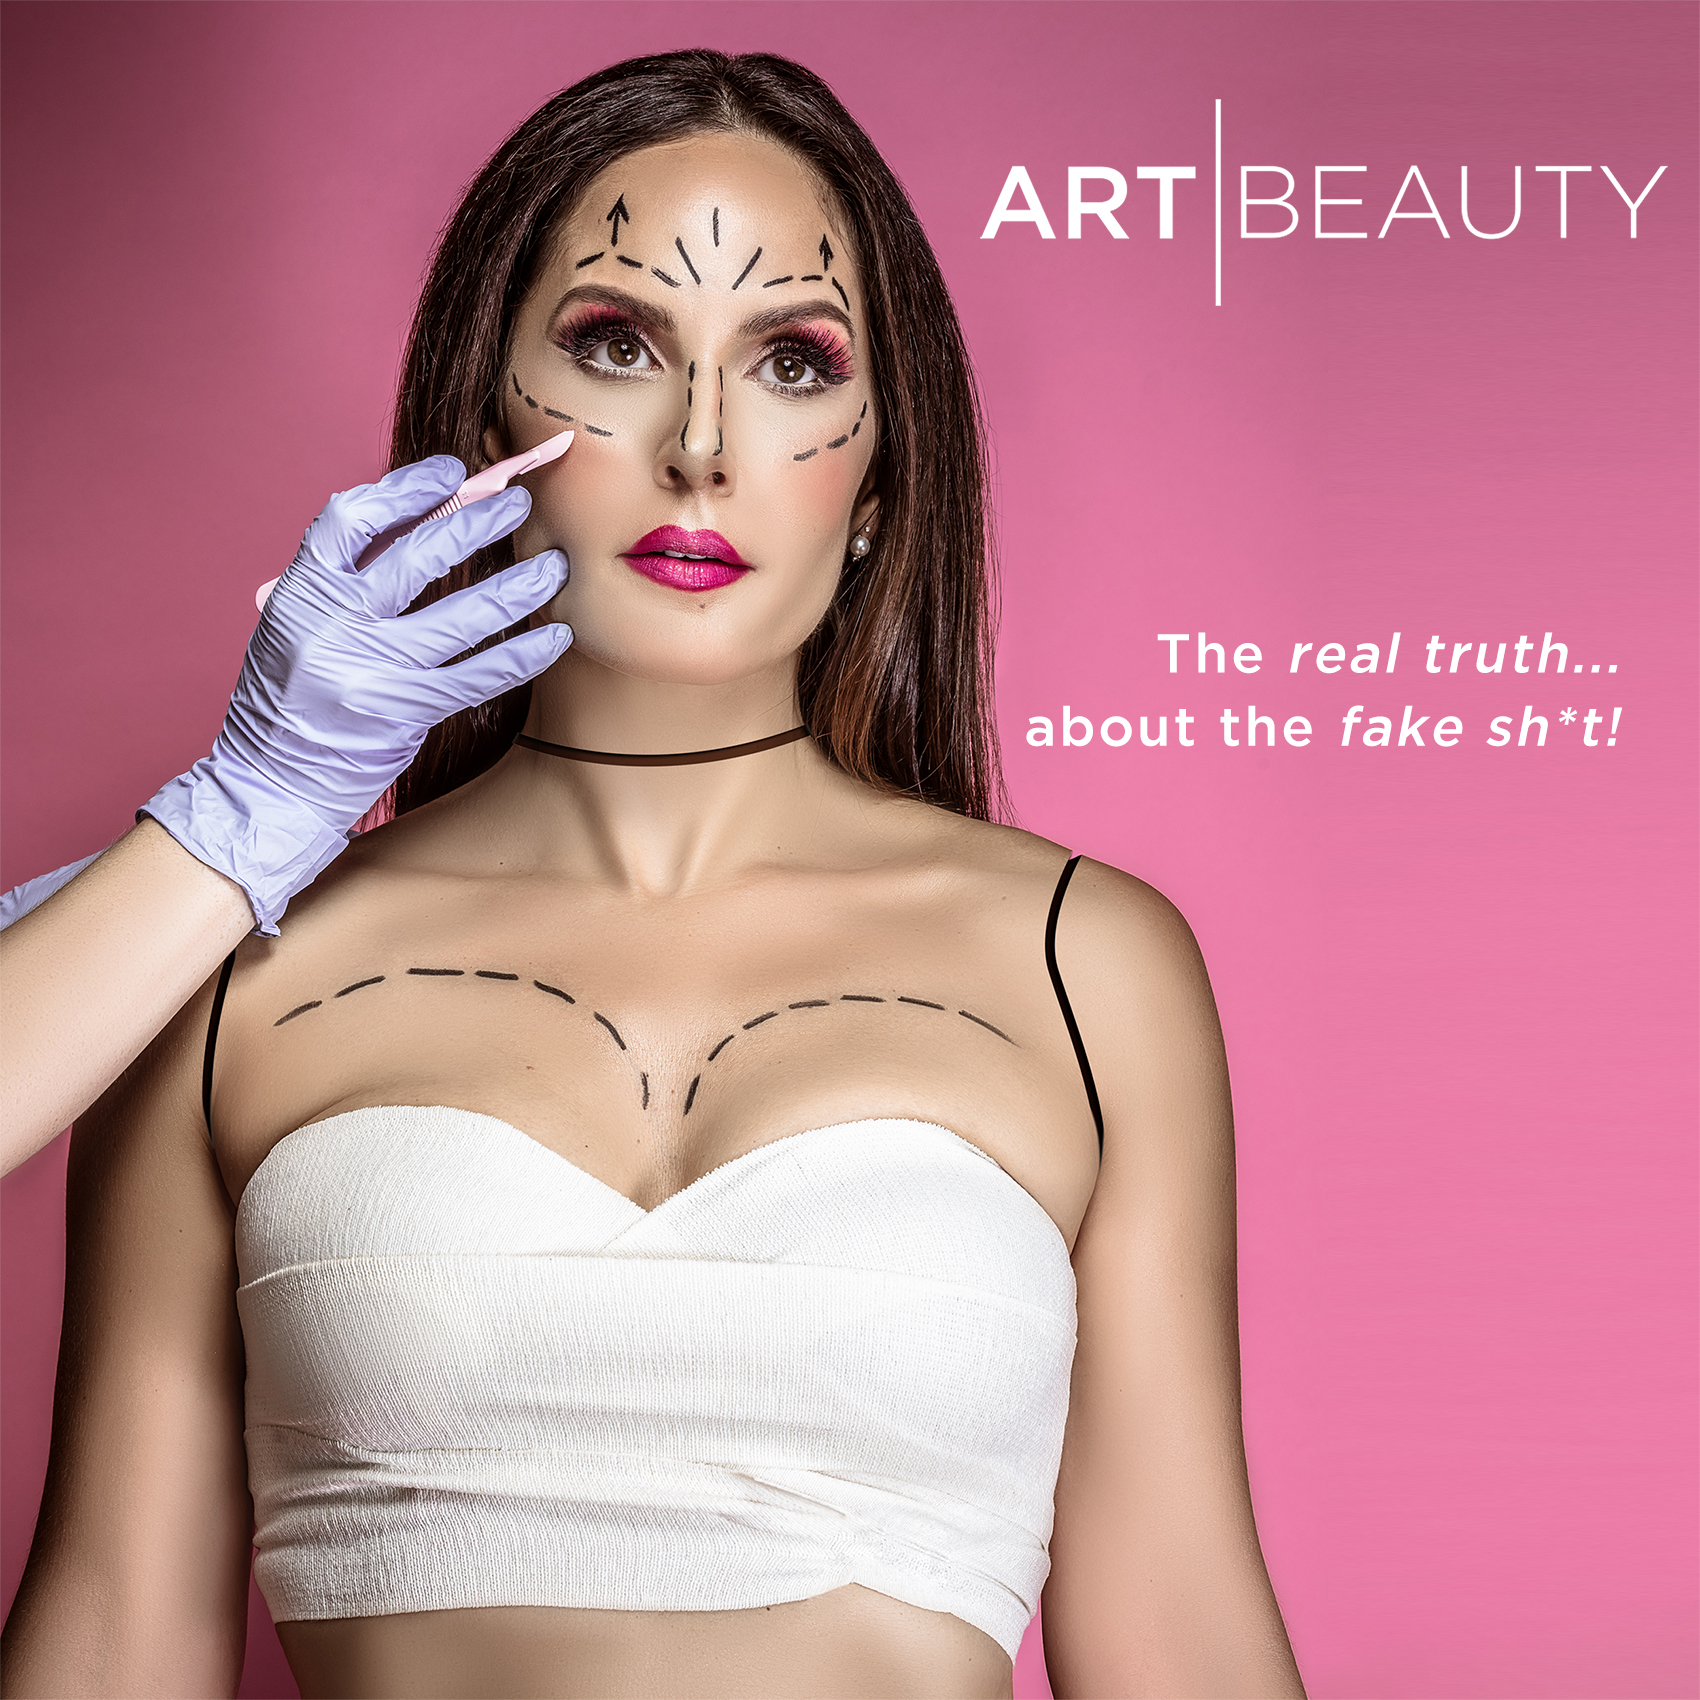 The Beauty Industry Exposed